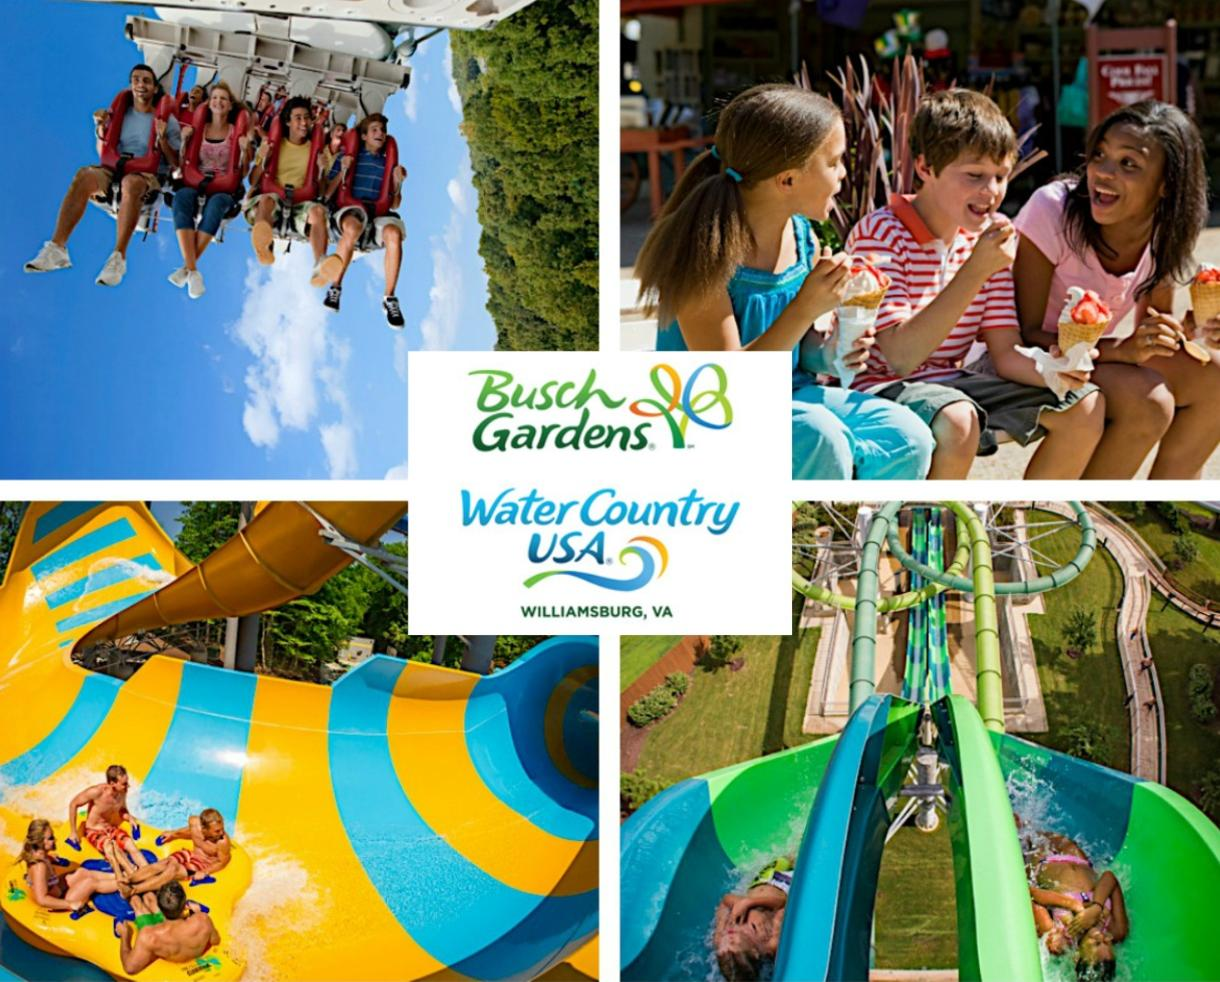 Deal Save 20 On Single Day Admission To Busch Gardens Williamsburg Or Water Country Usa Using